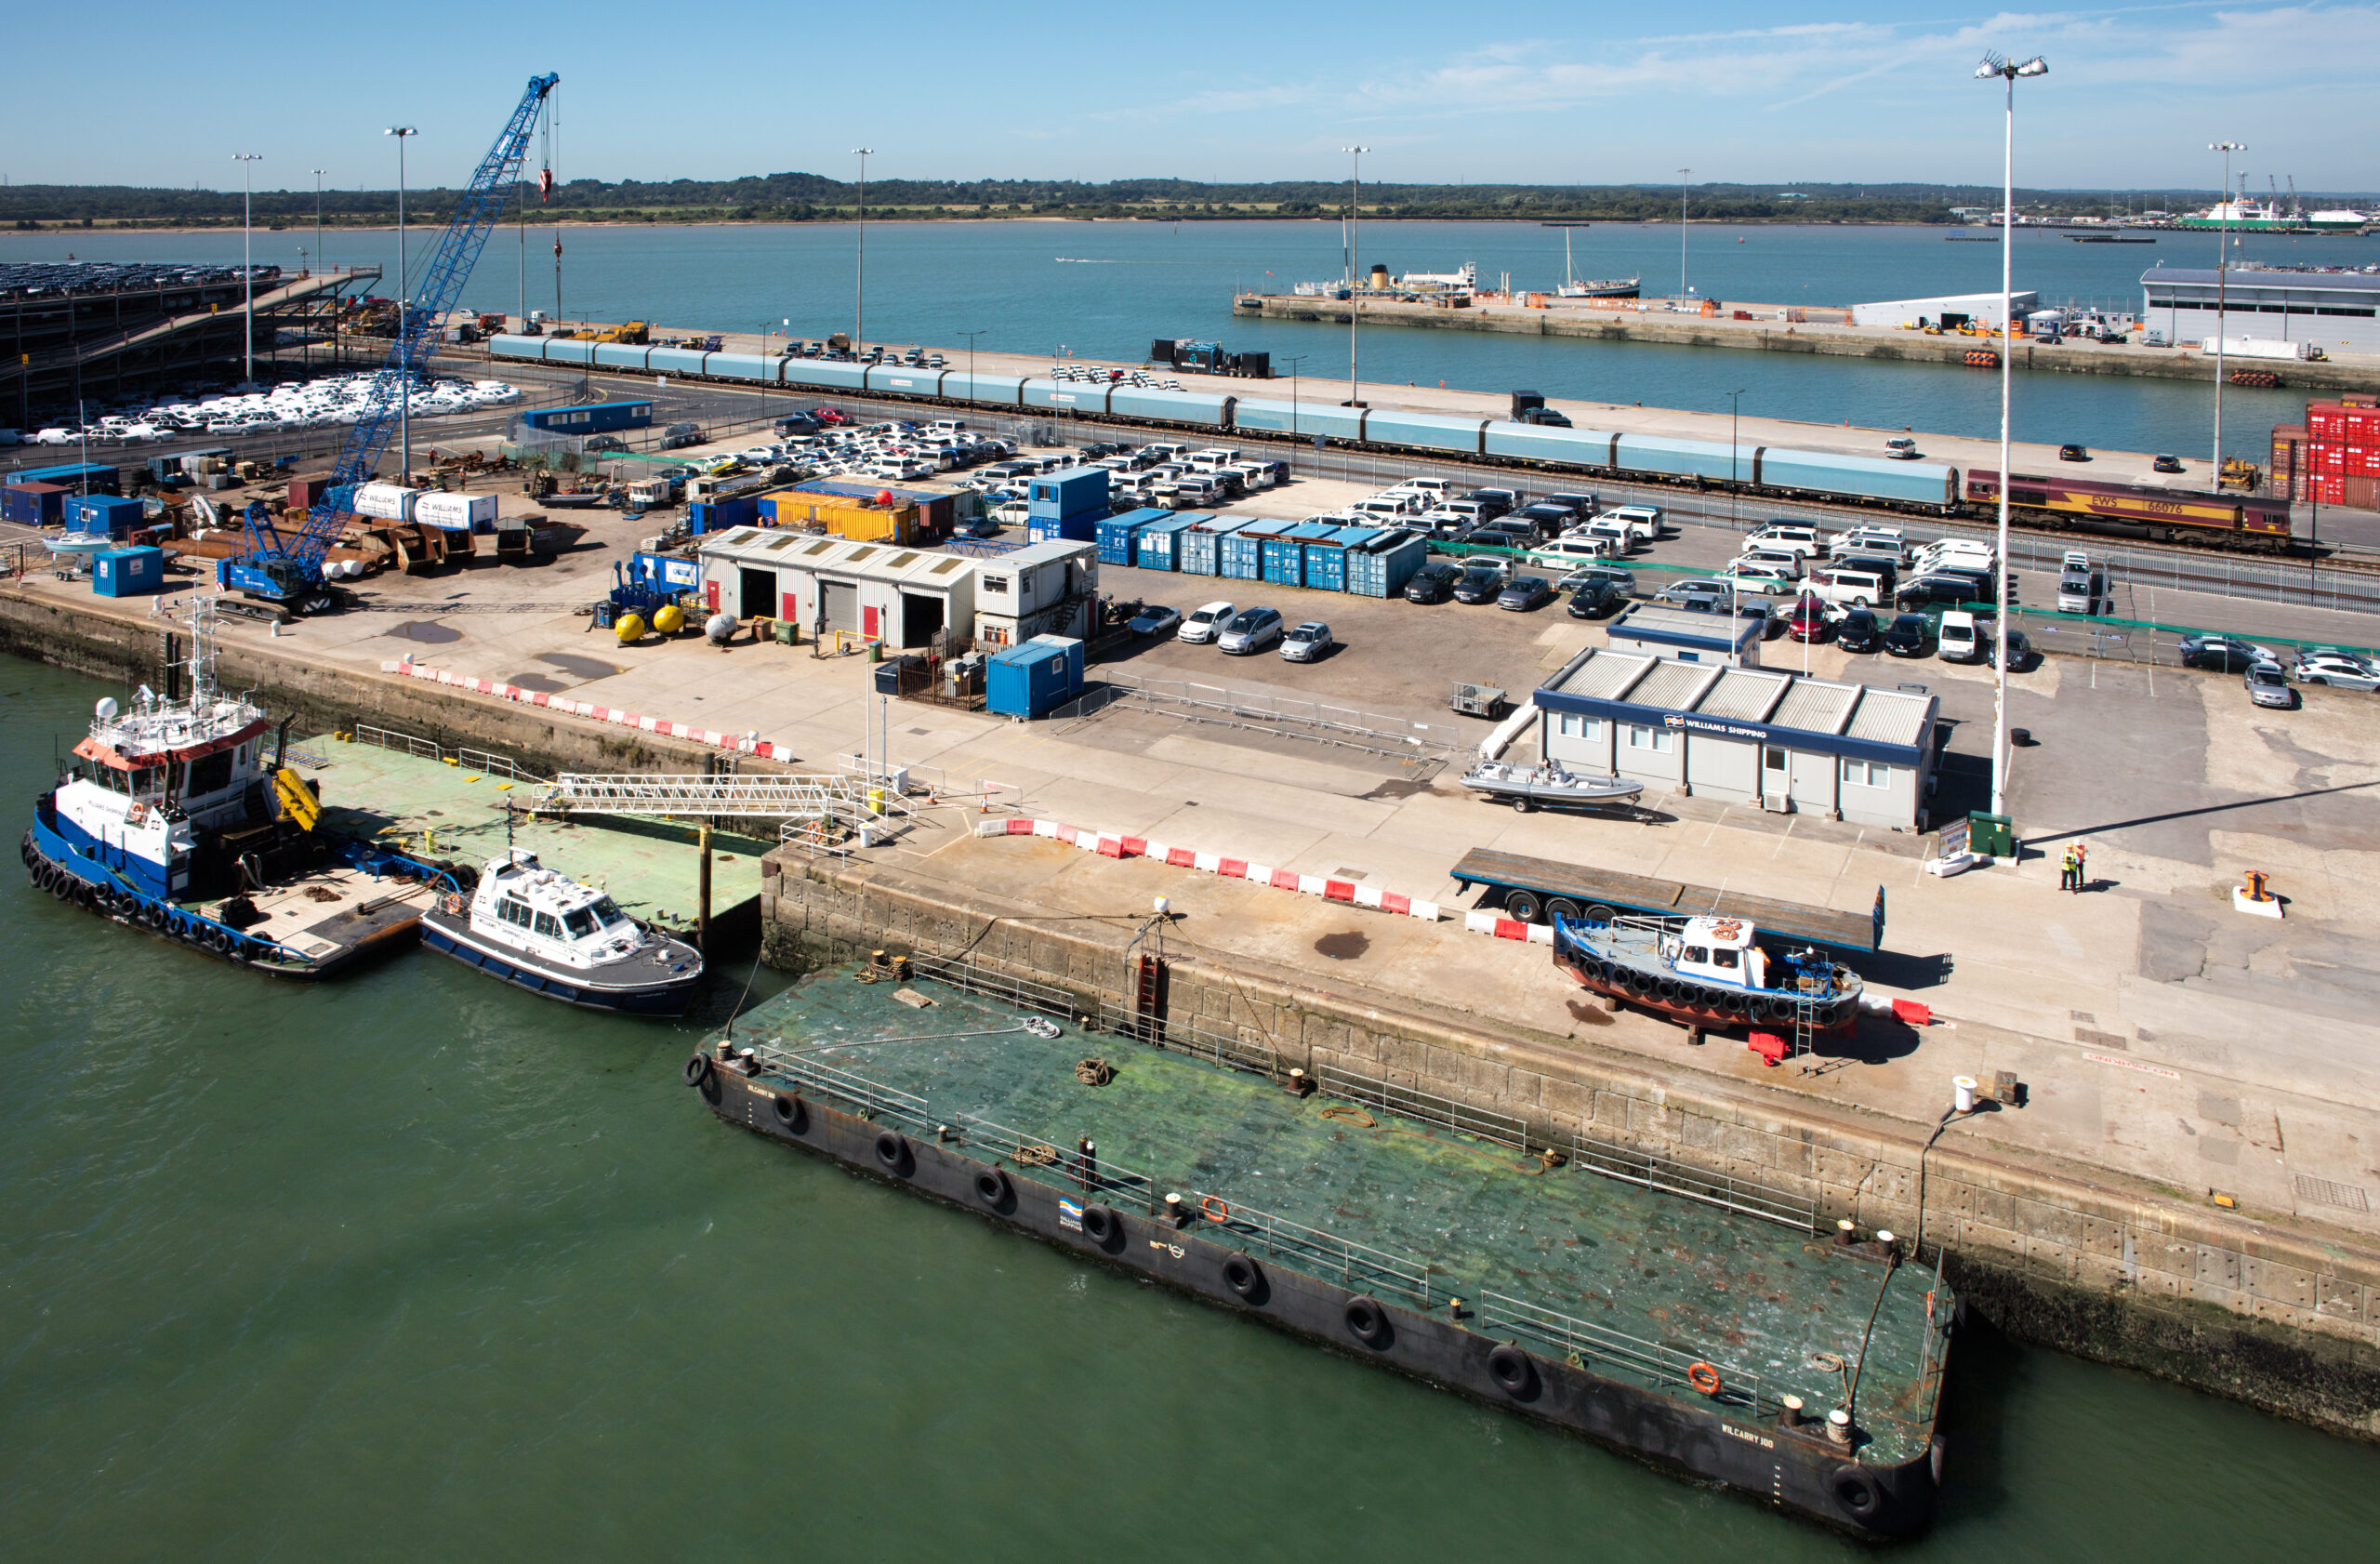 Quayside Storage at Southamptons Eastern Docks